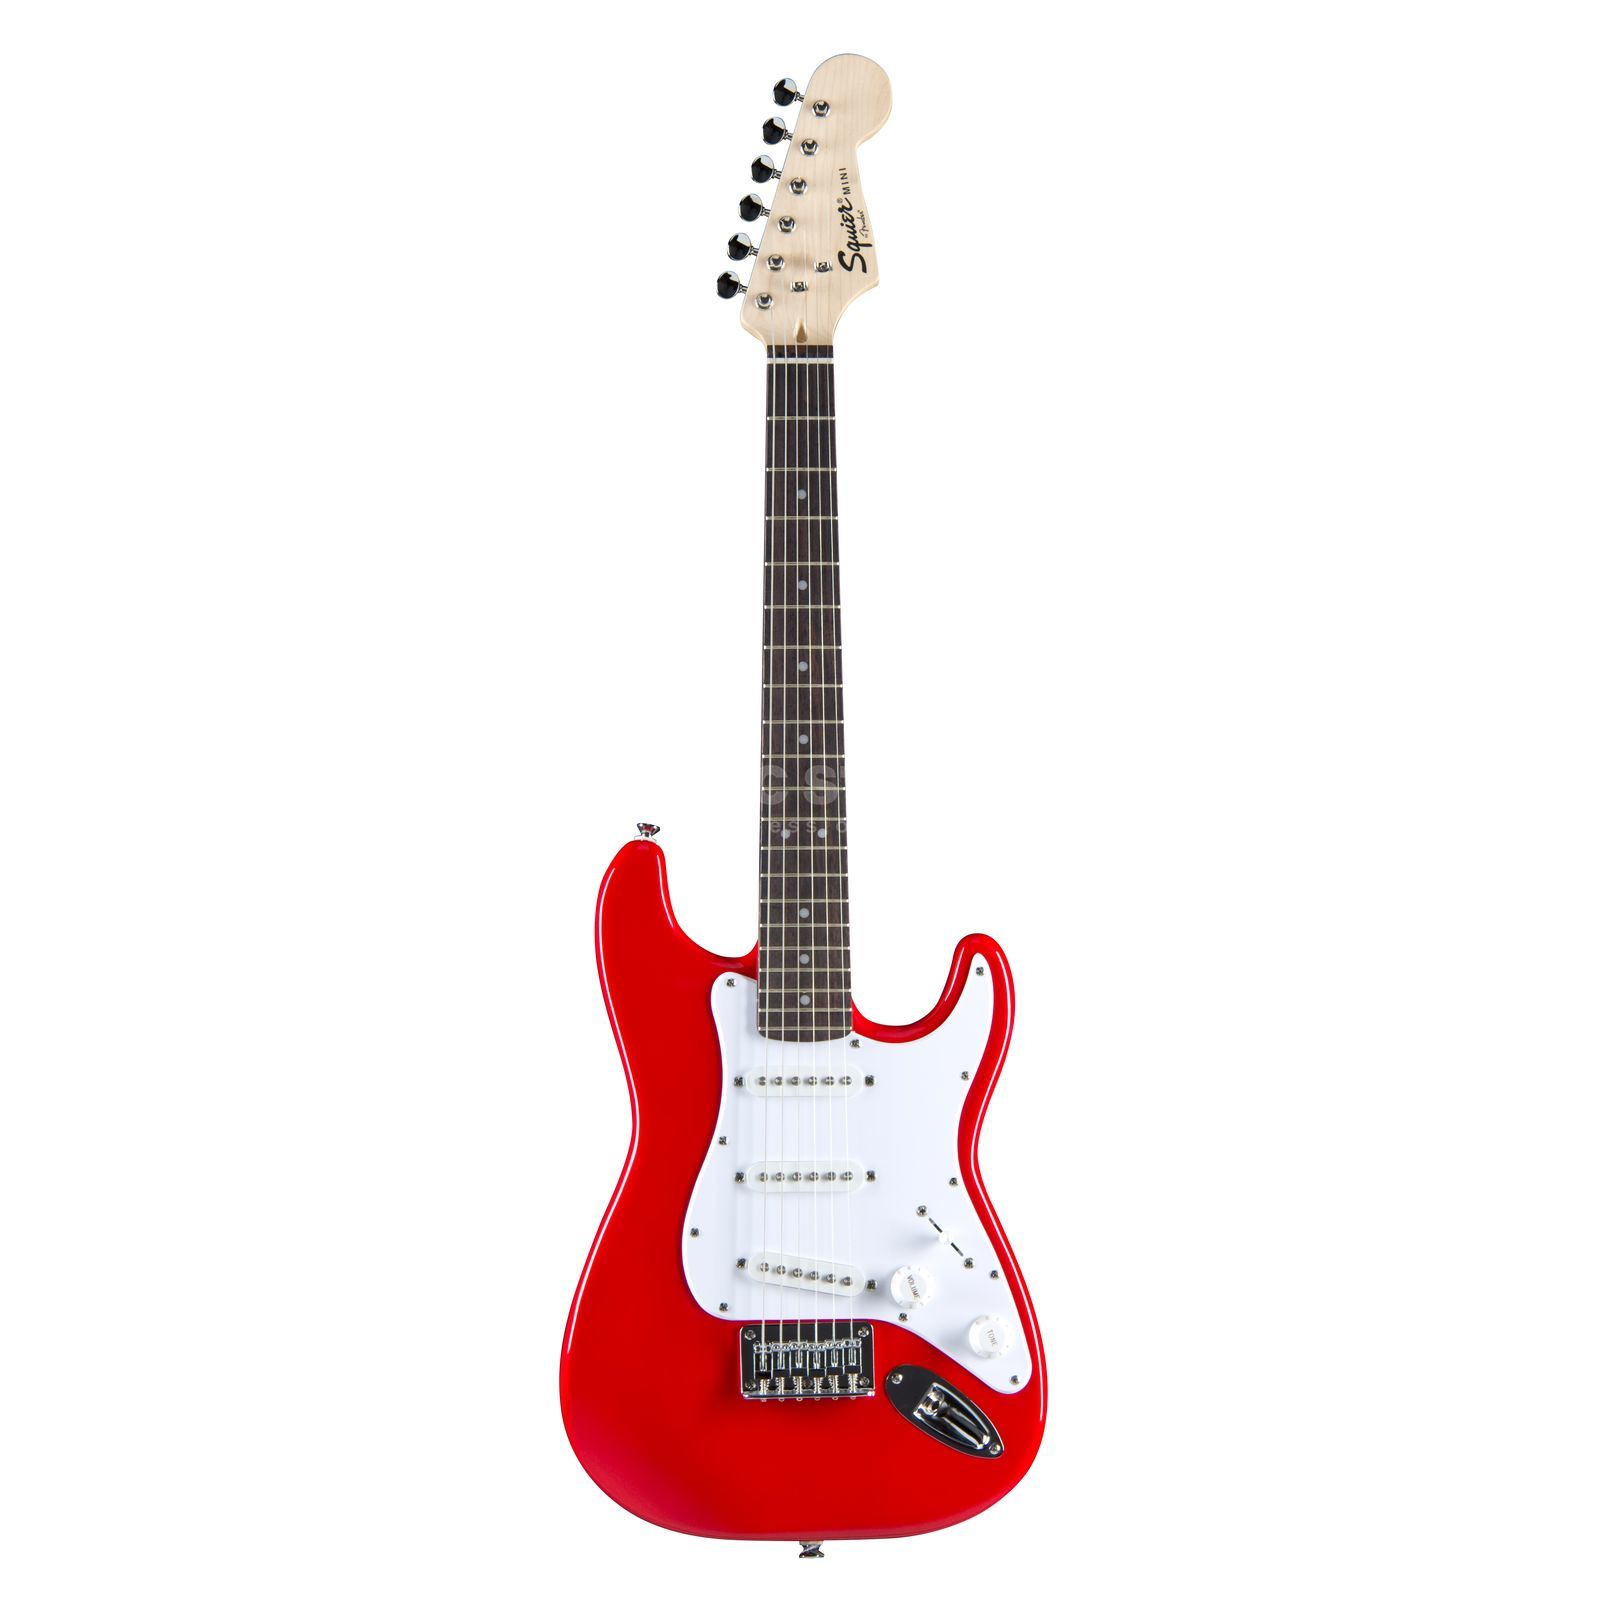 Fender Squier Mini Strat RW Torino Red Produktbild